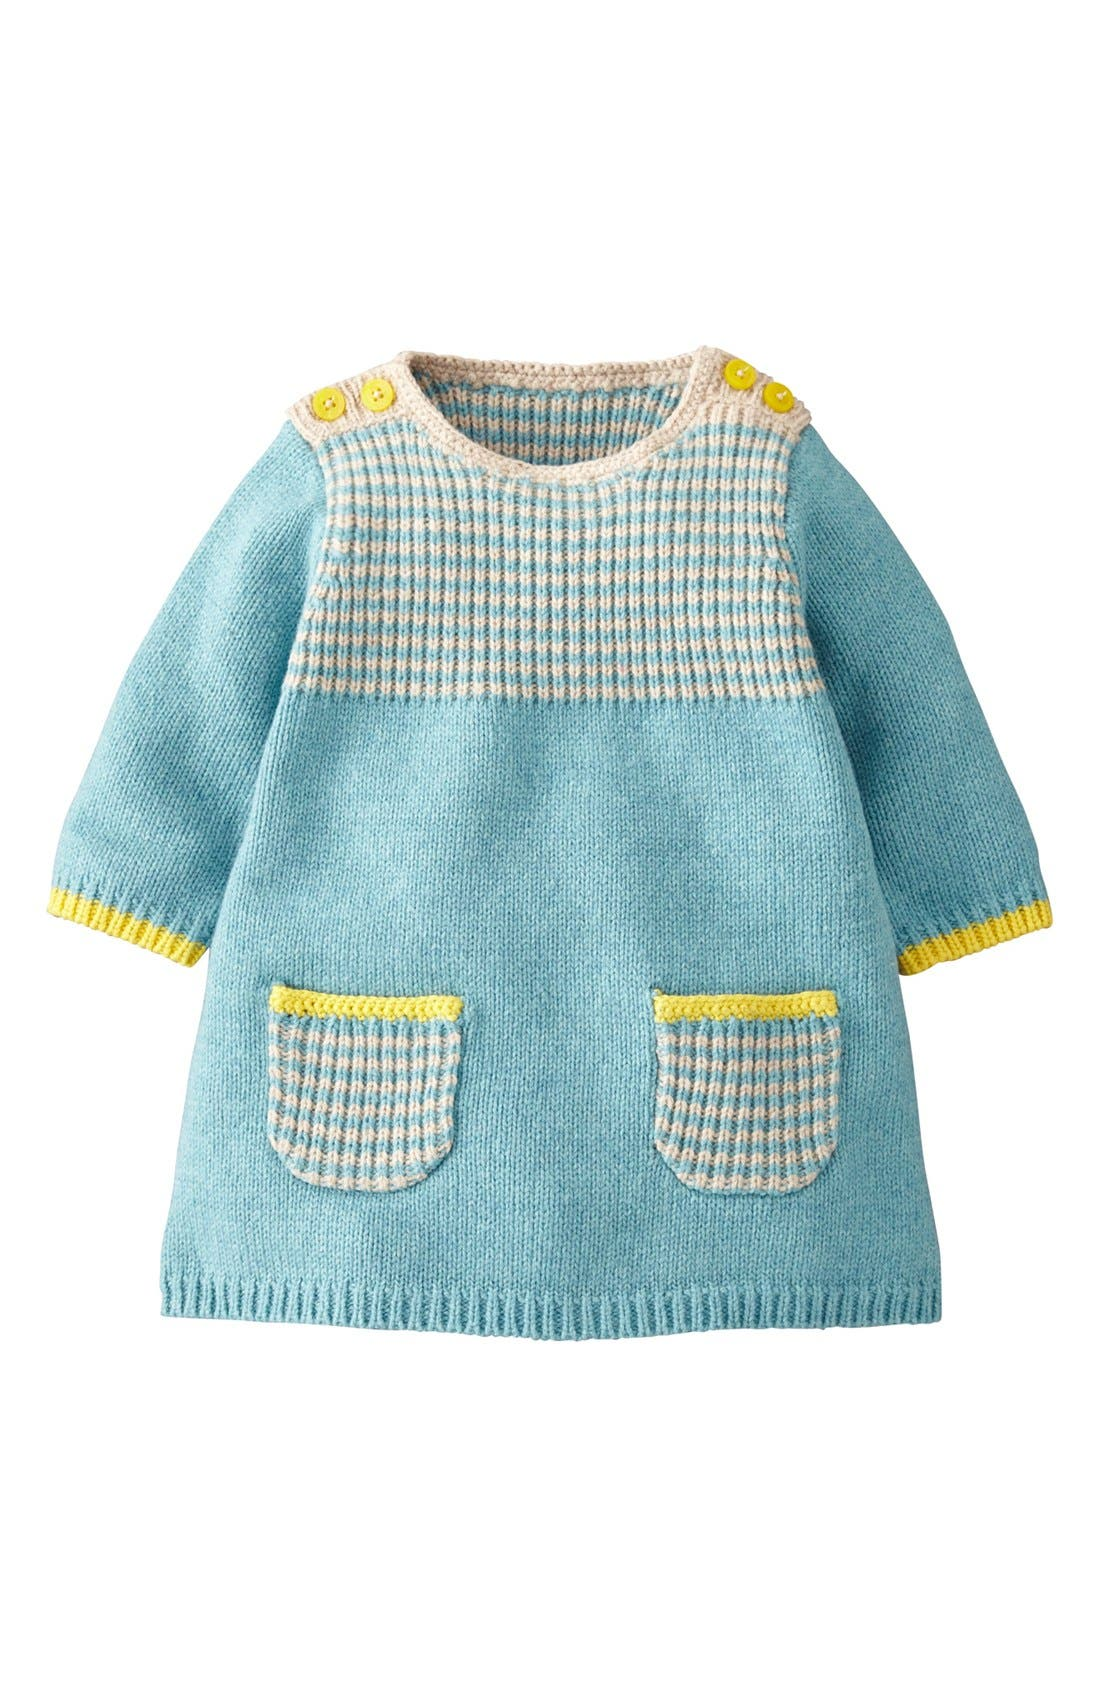 Main Image - Mini Boden 'Stripey' Knit Dress (Baby Girls)